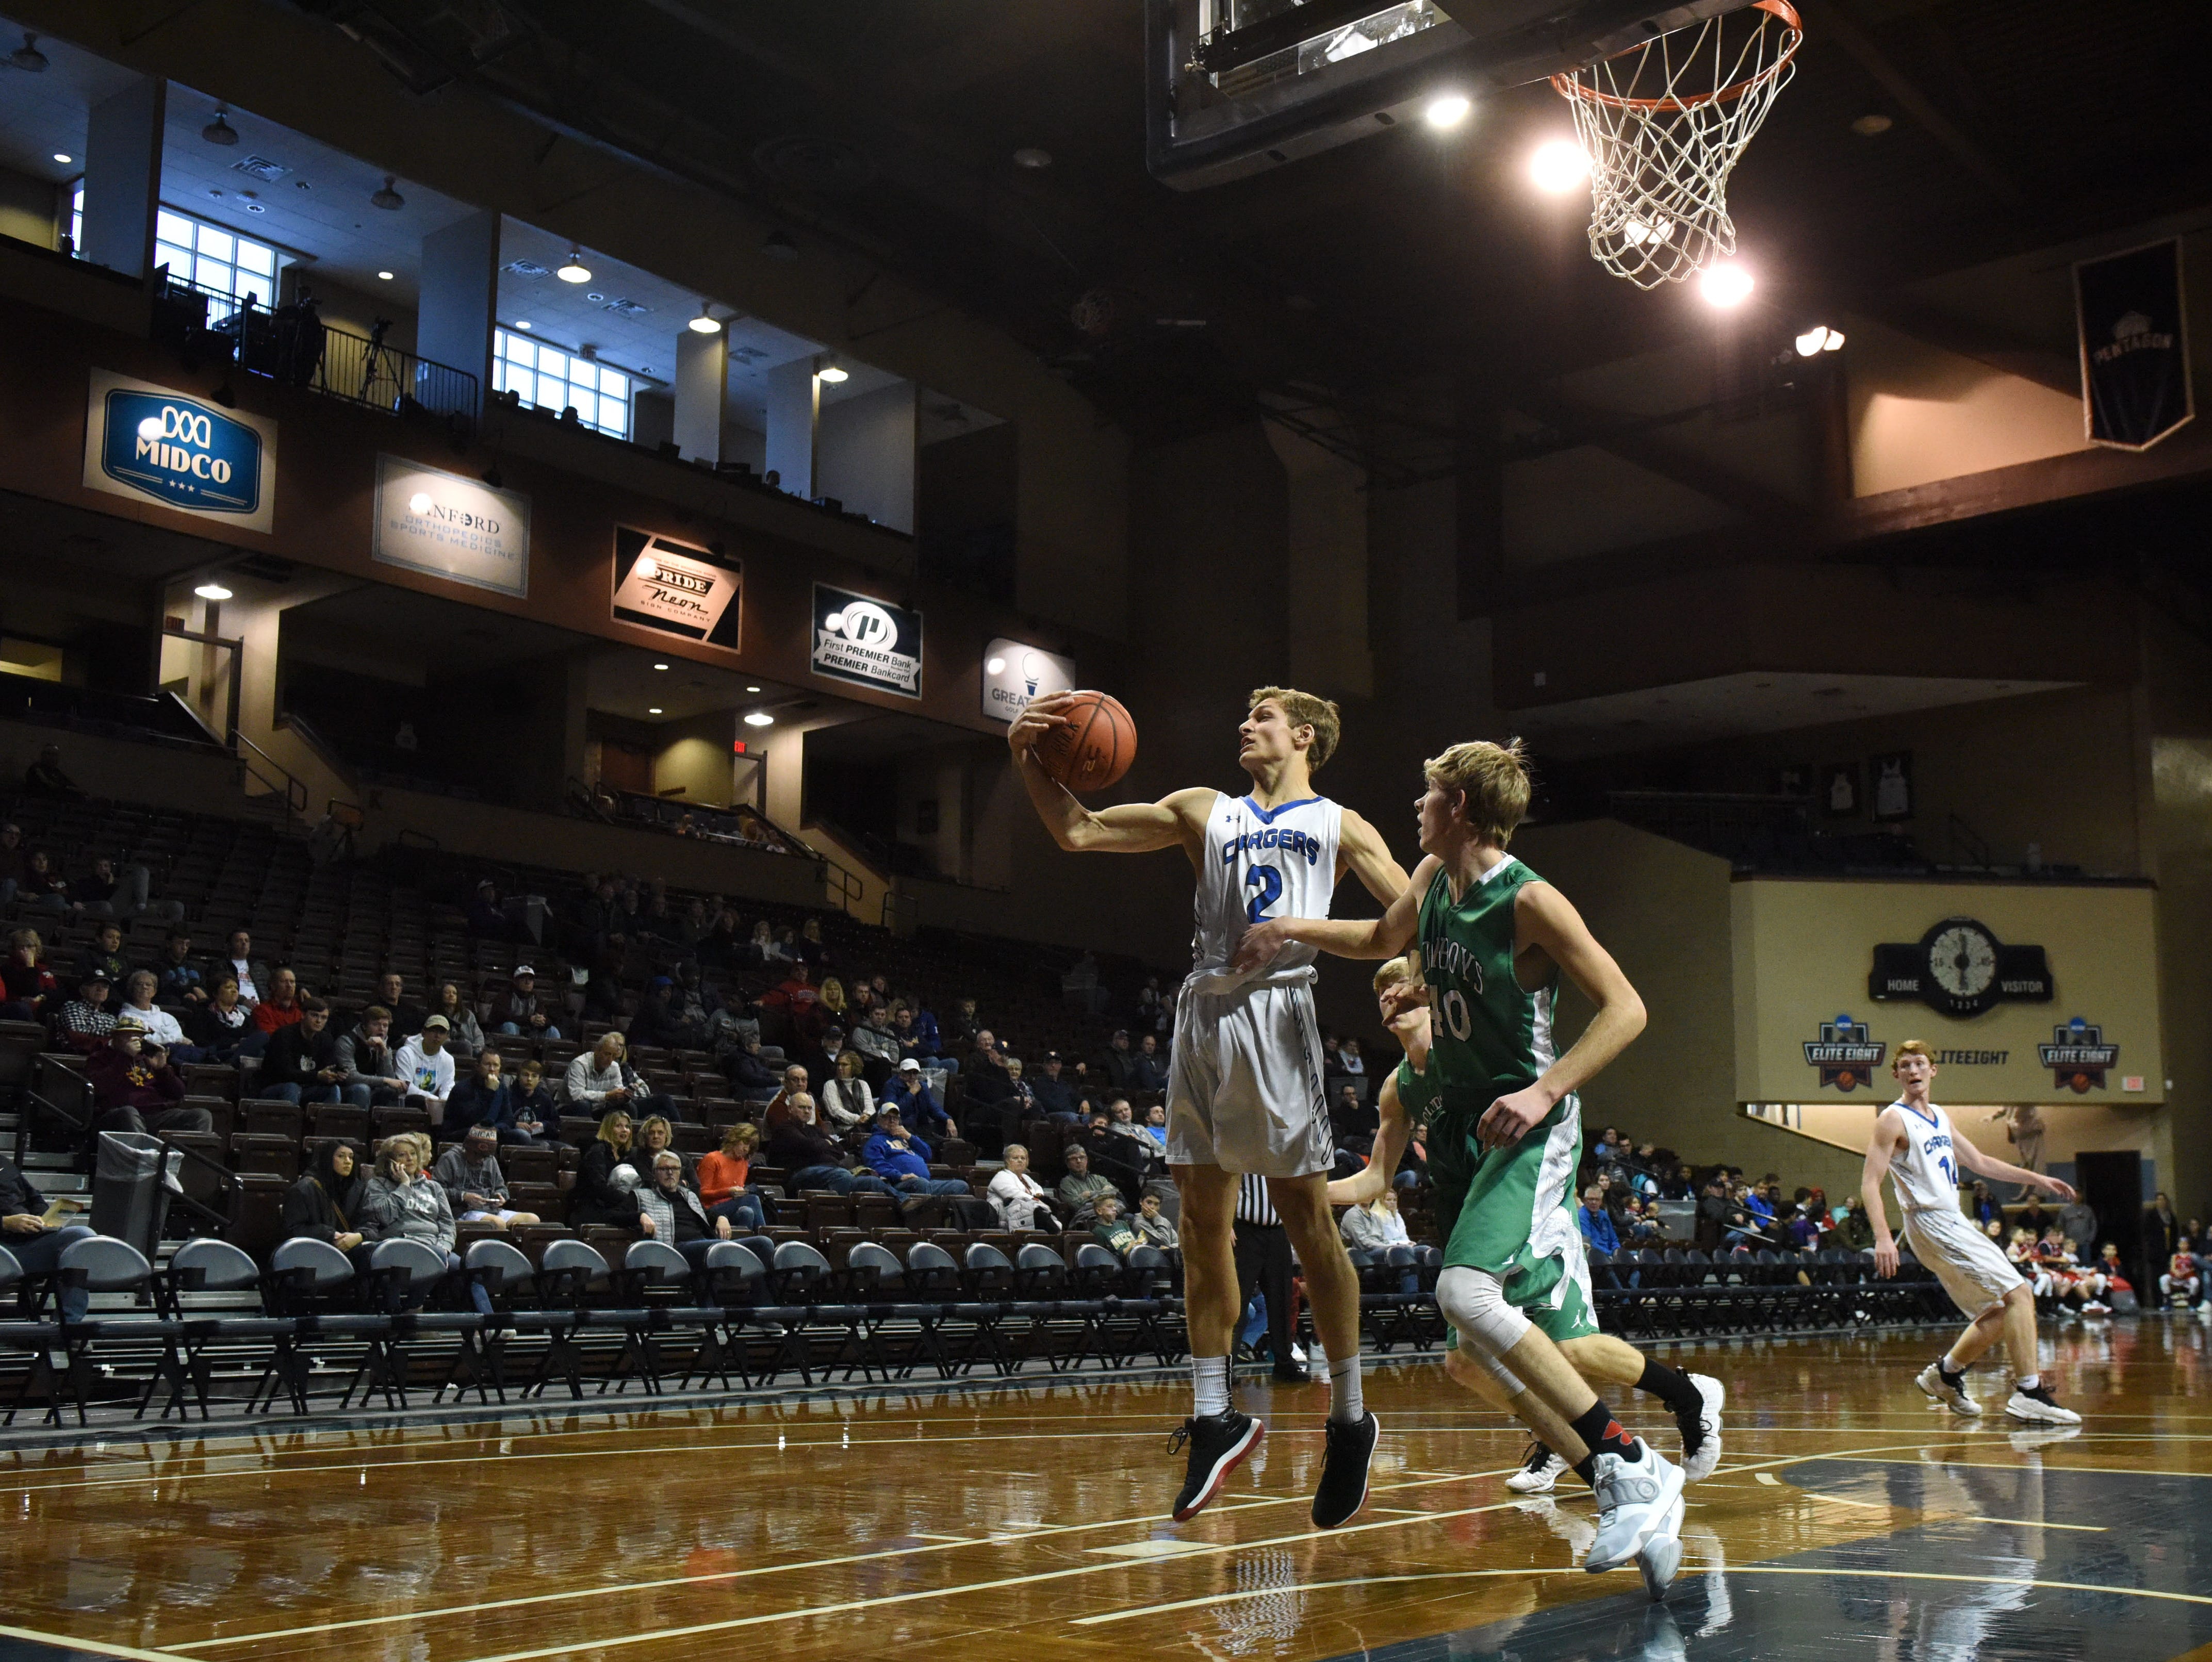 Sioux Falls Christian's Colliin Reitsma (2) grabs the ball during a game against Breckenridge at the Hoop City Classic at the Sanford Pentagon in Sioux Falls, S.D., Saturday, Dec. 29, 2018.